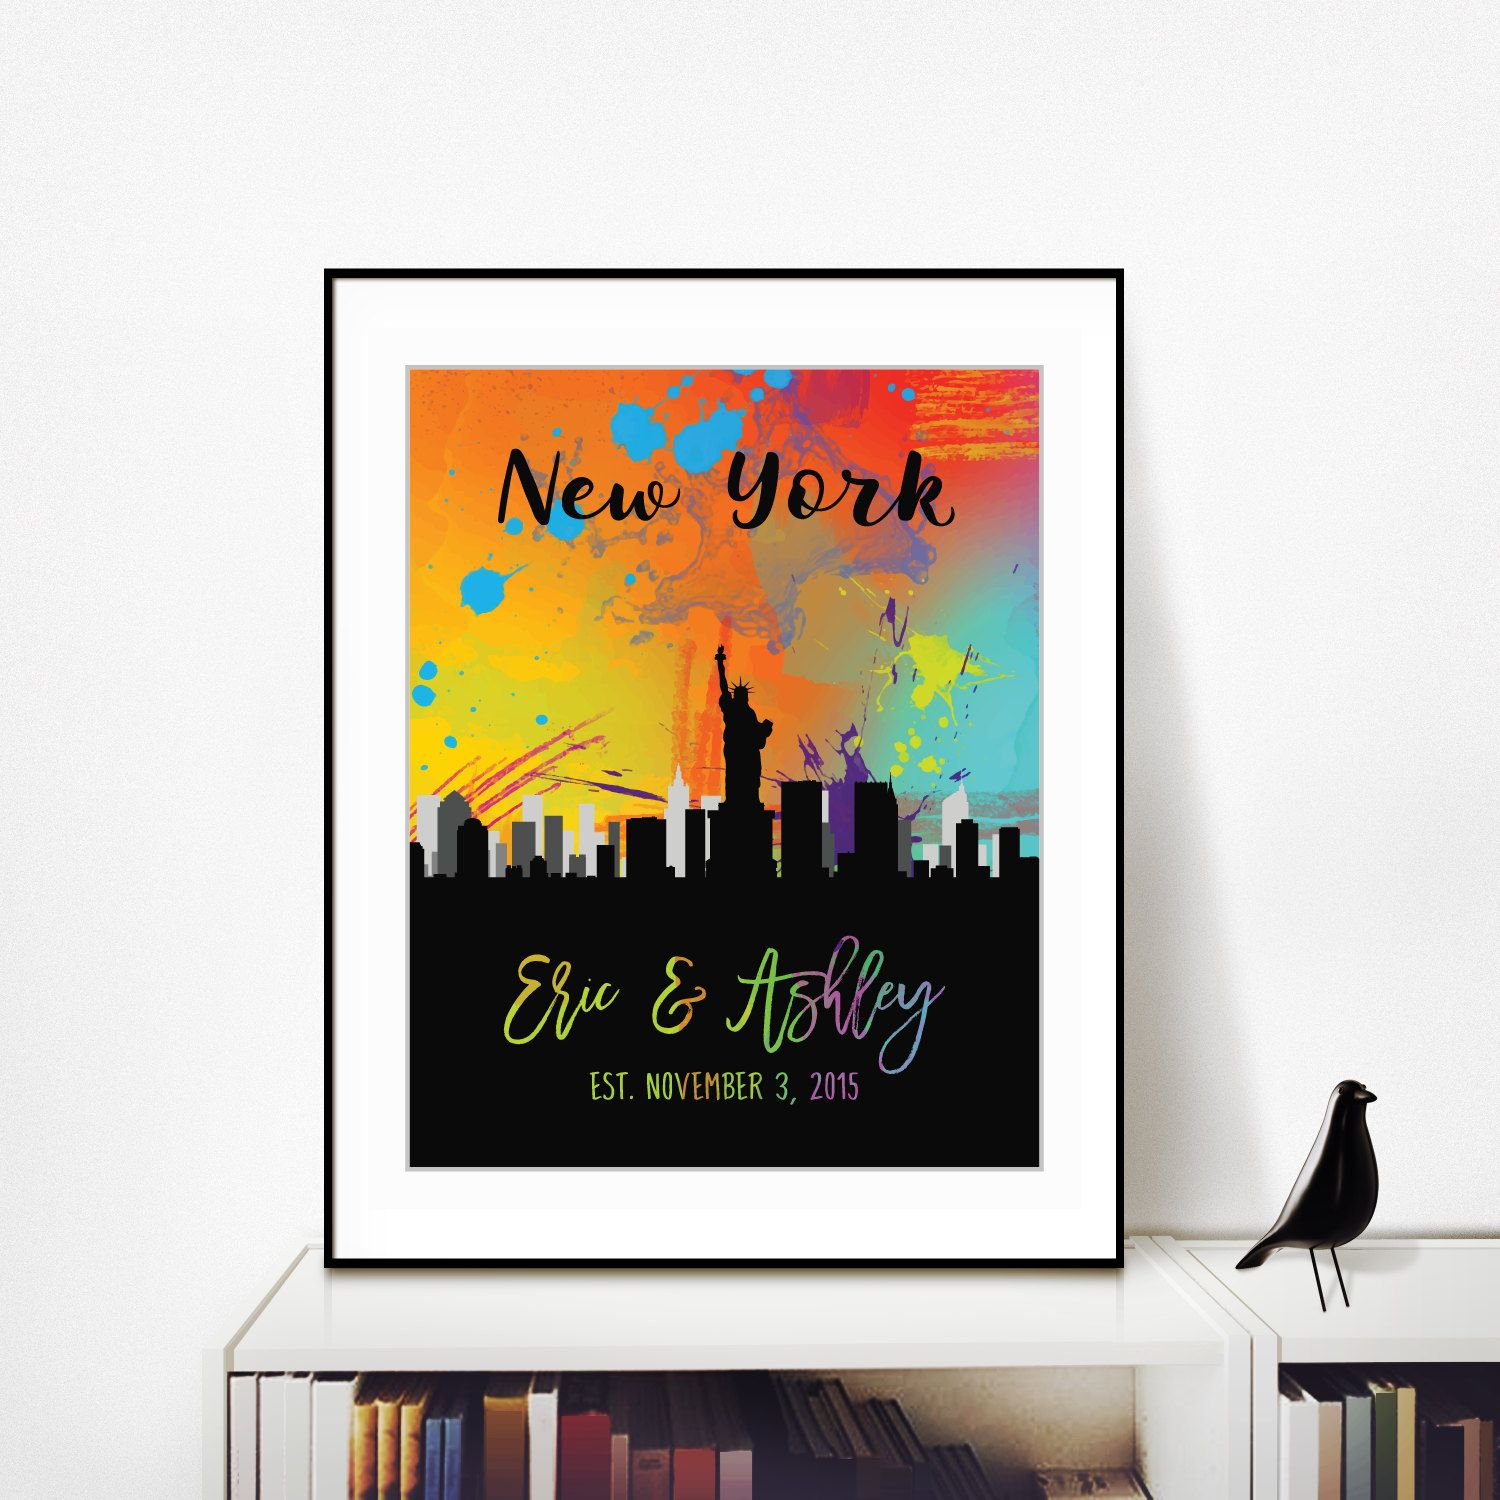 New York City Skyline Prints Personalized Anniversary Gift Boyfriend Girlfriend Birthday For Valentine Gifts Men Custom Art By